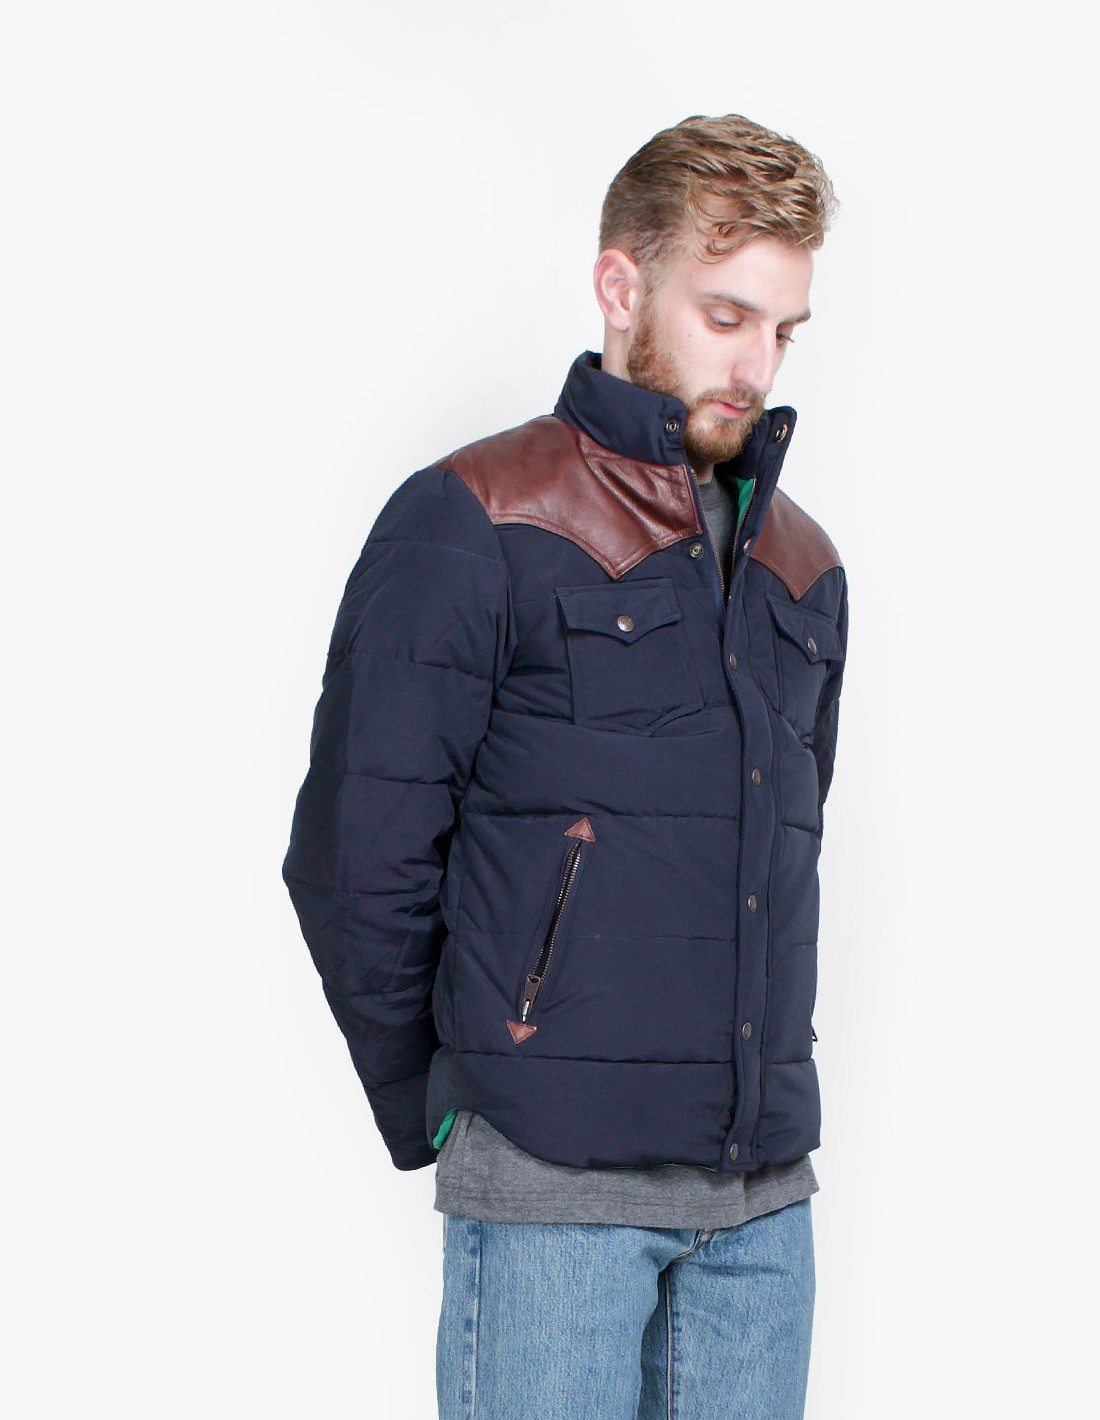 Penfield Stapleton Jacket in Navy